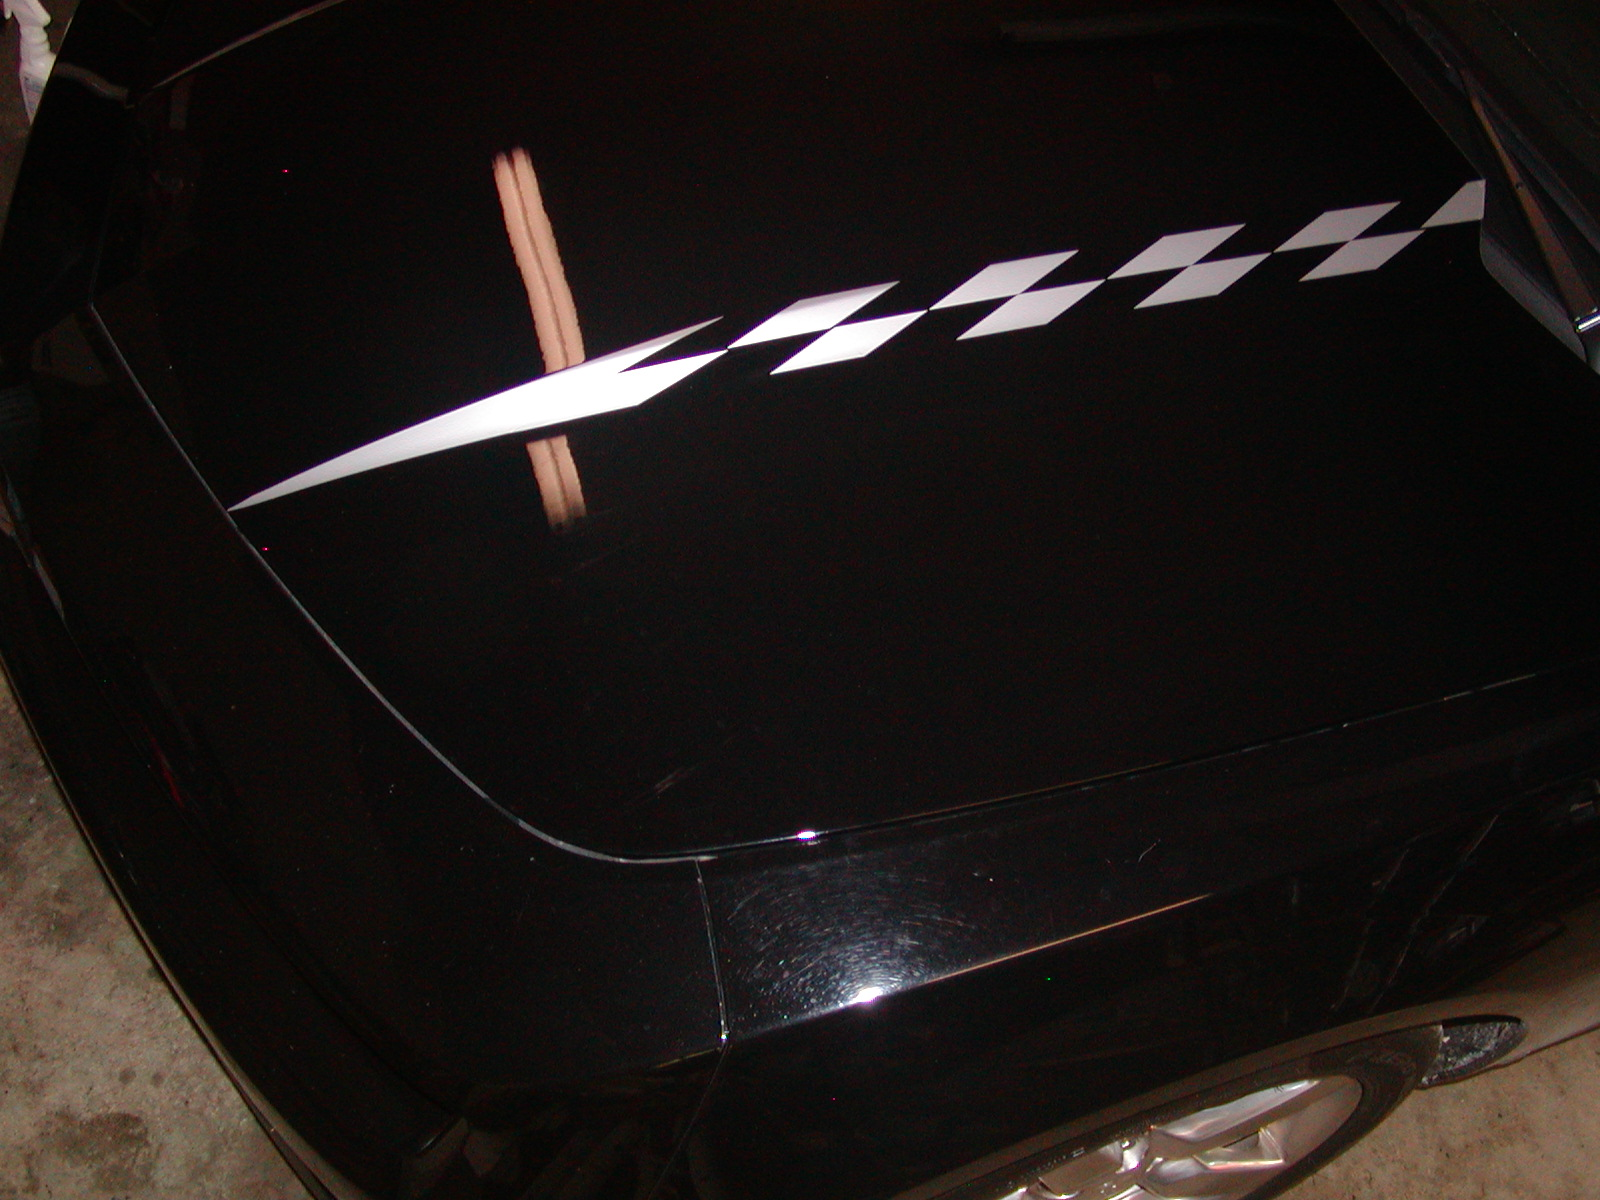 �2010 - 2011 Camaro RACING CHECK Hood Cowl Stripe Decals